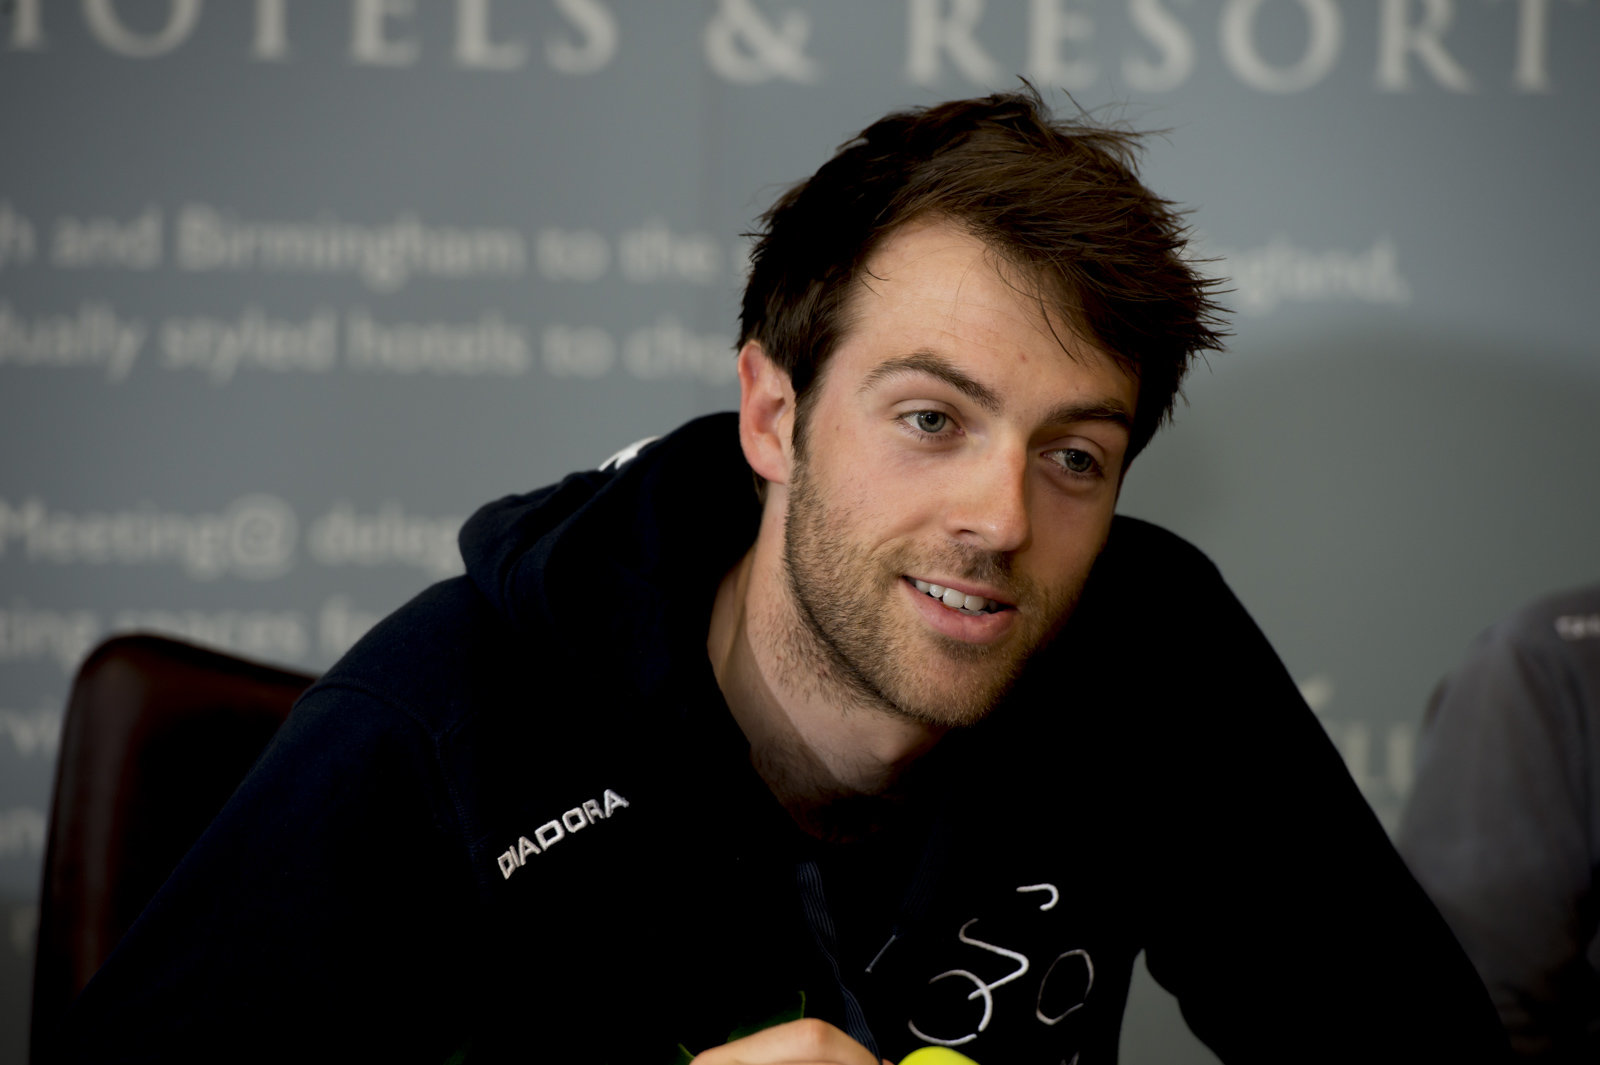 Alex Dowsett interviewed